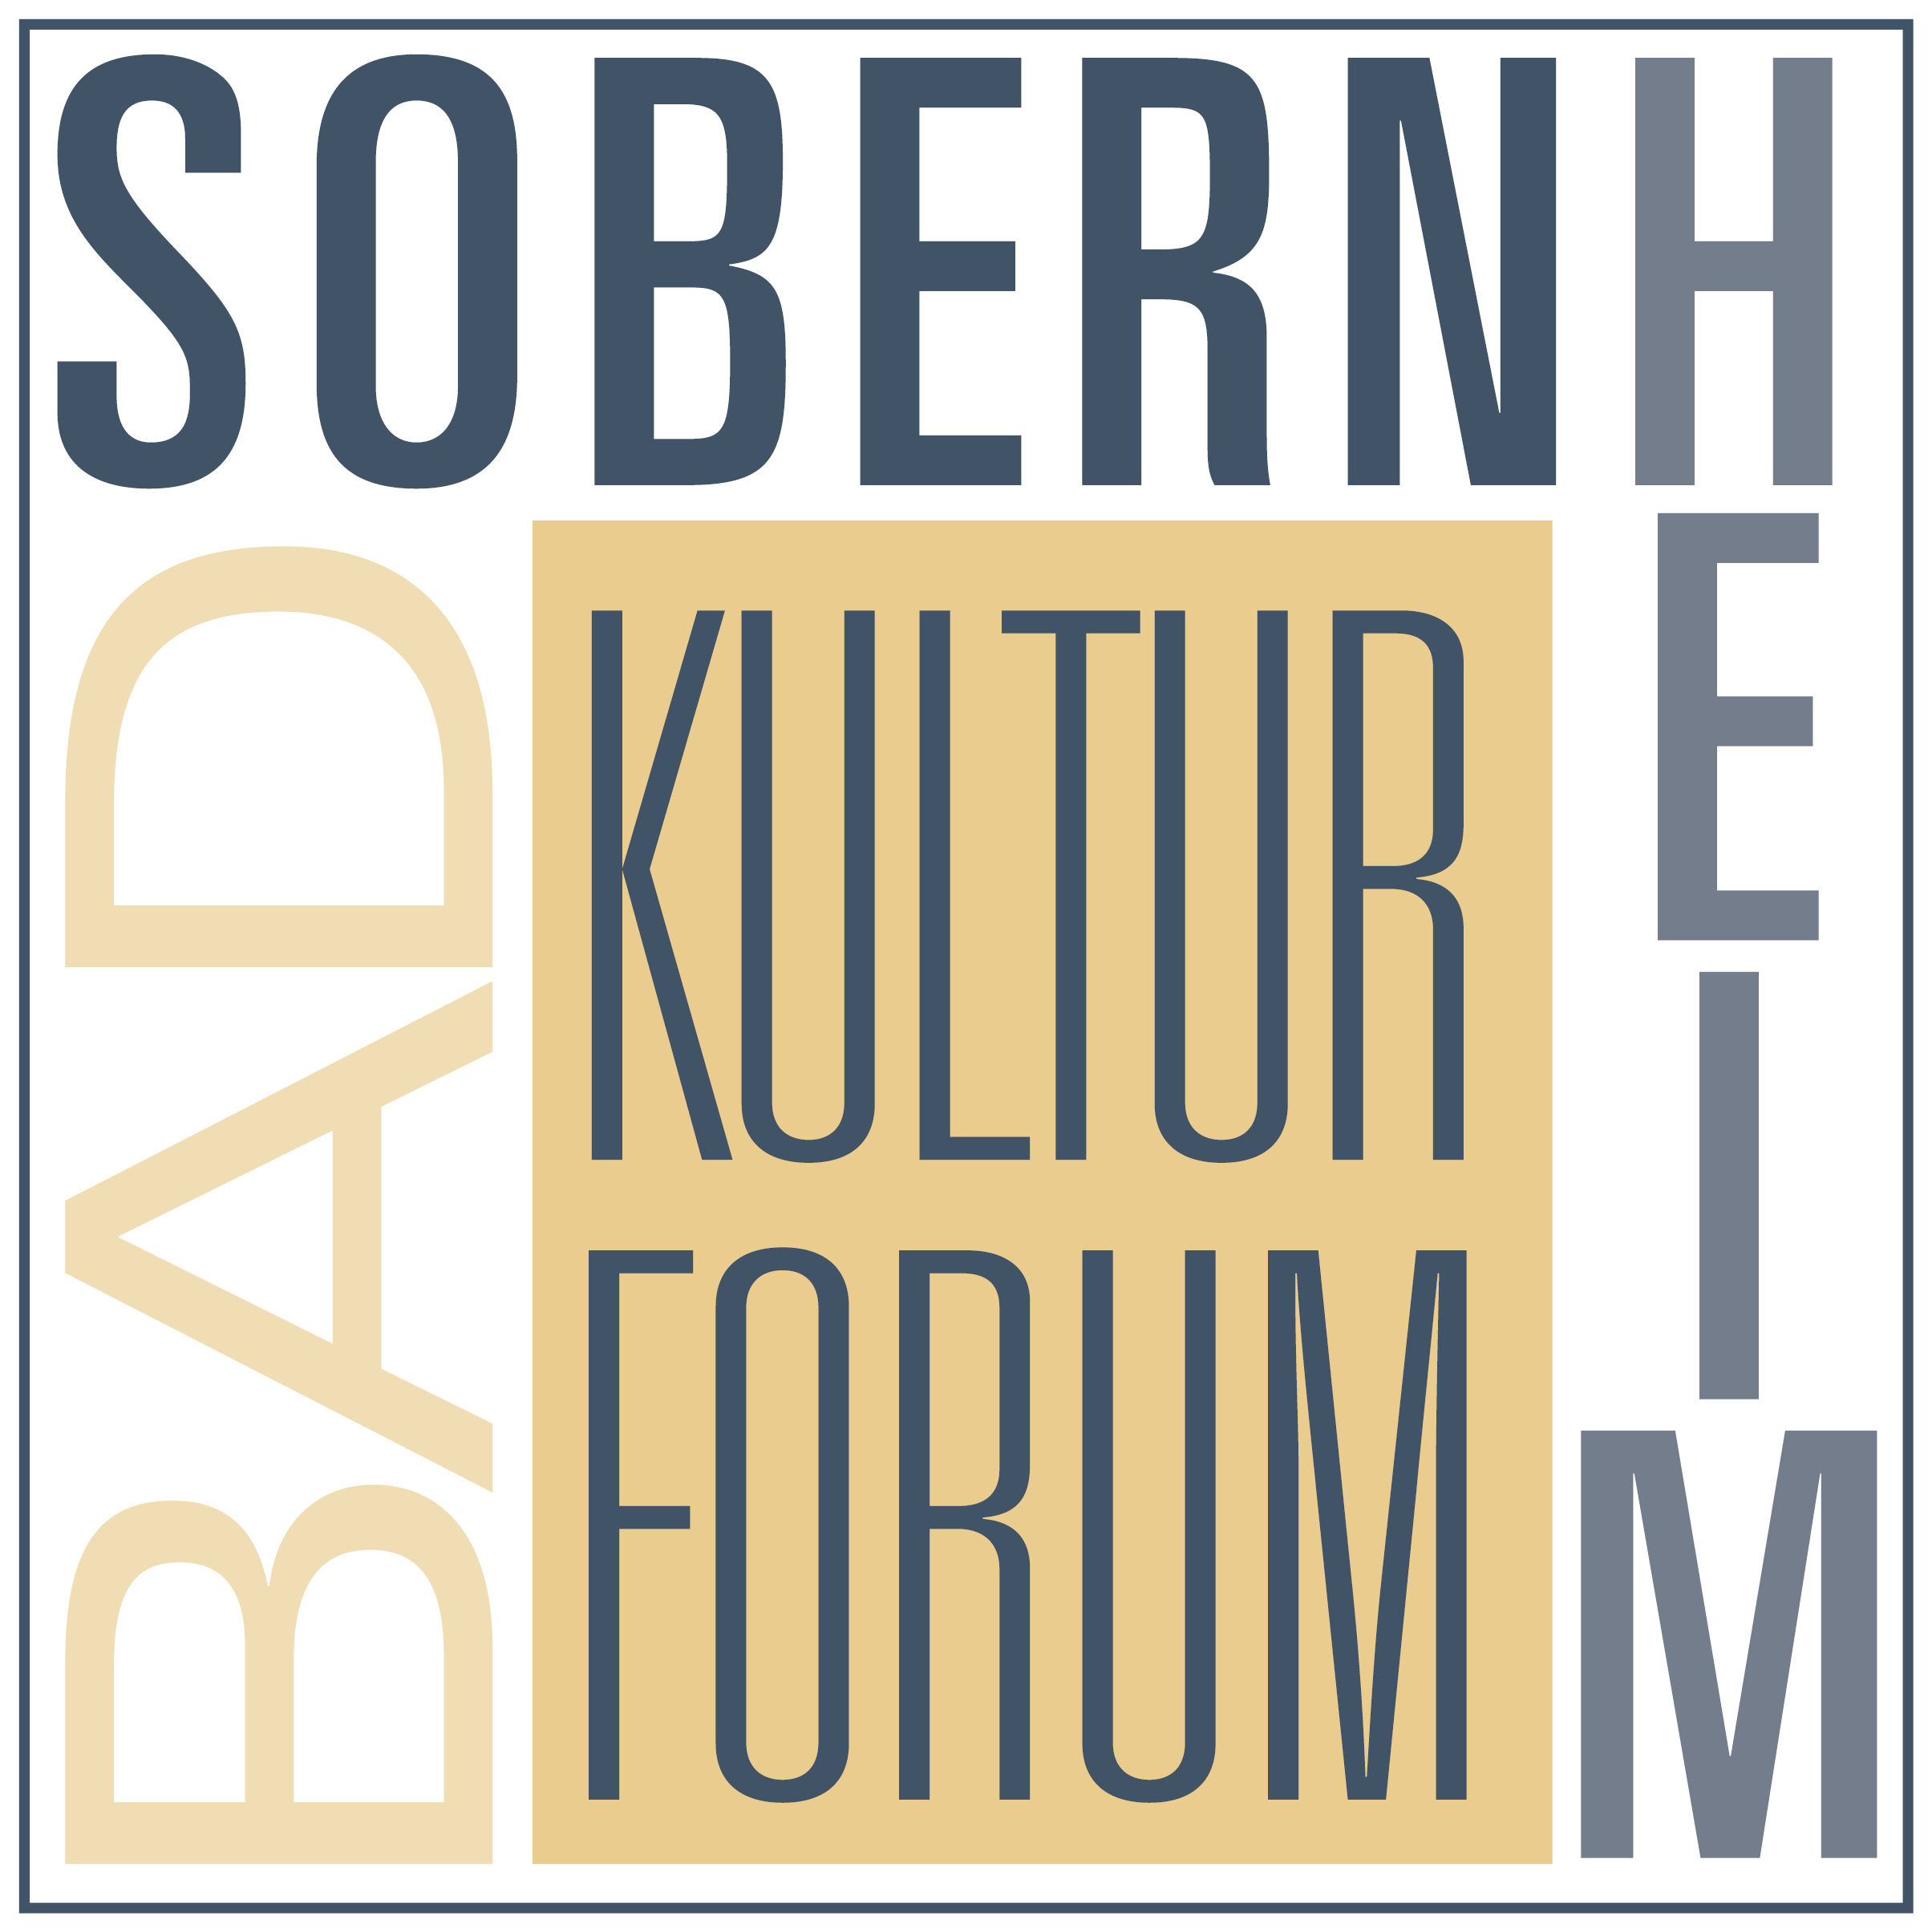 Kulturforum Bad Sobernheim e.V.